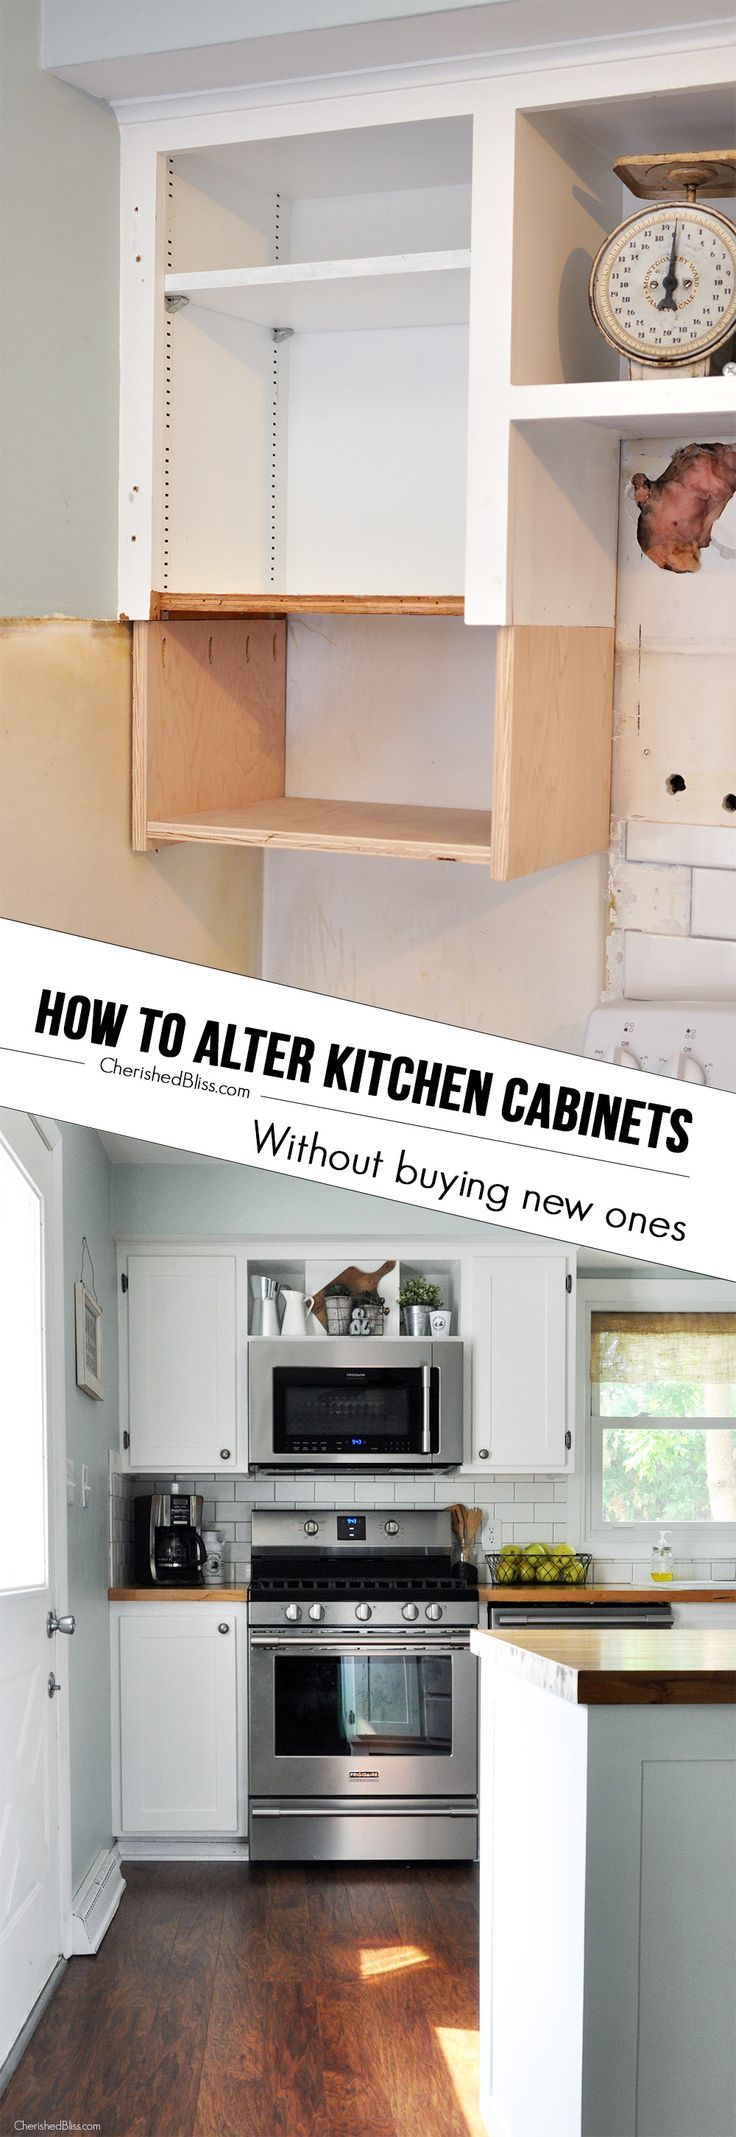 Panza enterprises ct home of designer - How To Alter Kitchen Cabinets